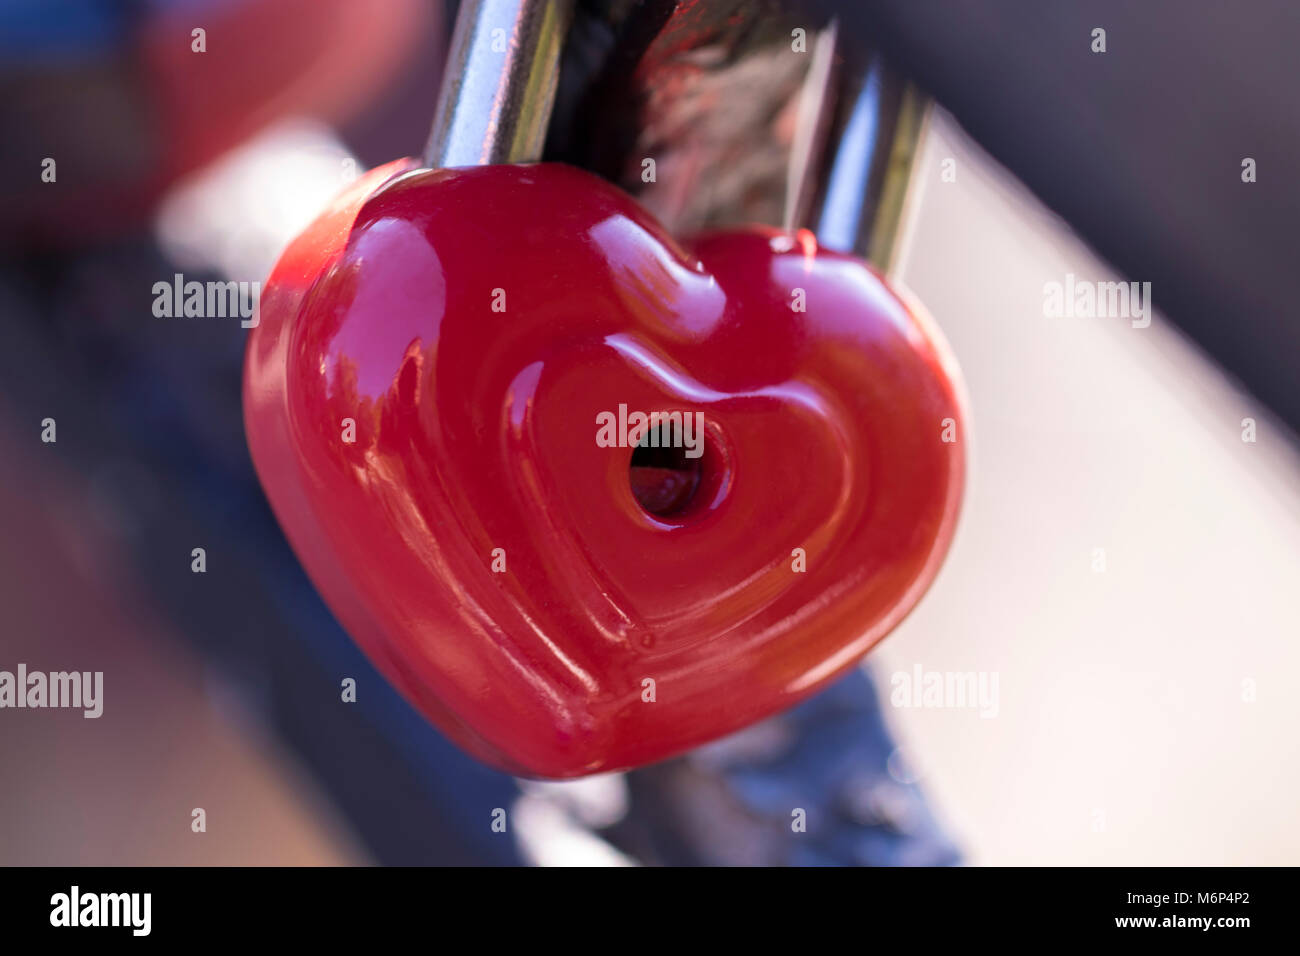 Heart Shaped Love Padlocks On The Bridge As A Symbol Of Eternal Love